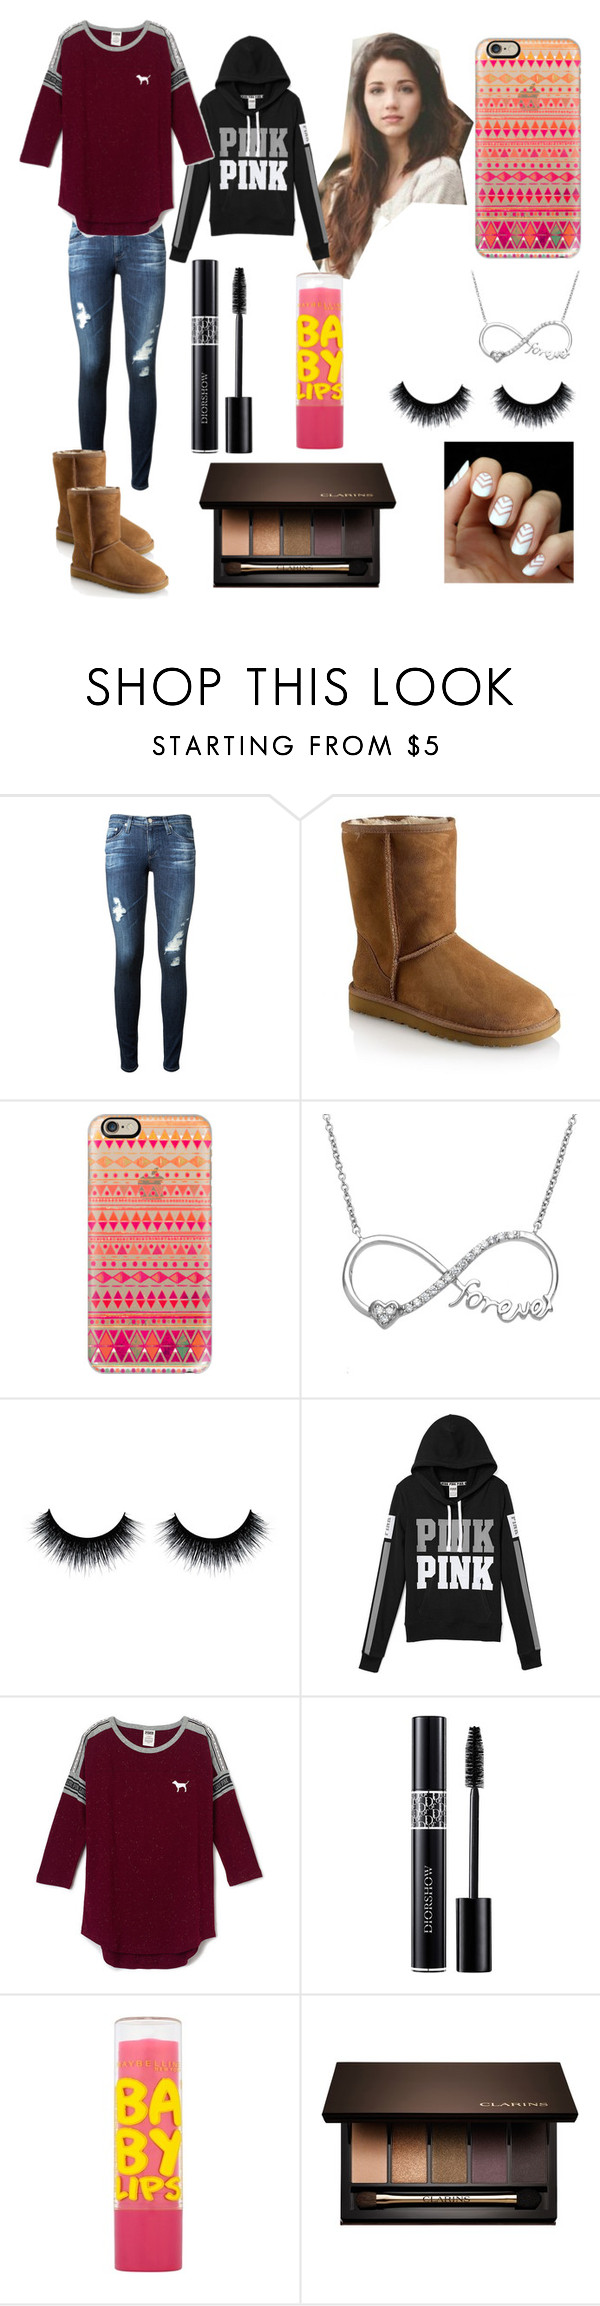 """""""Mondays"""" by x-sophiaaa-x ❤ liked on Polyvore featuring AG Adriano Goldschmied, UGG Australia, Casetify, La Preciosa, Christian Dior, Maybelline and Clarins"""